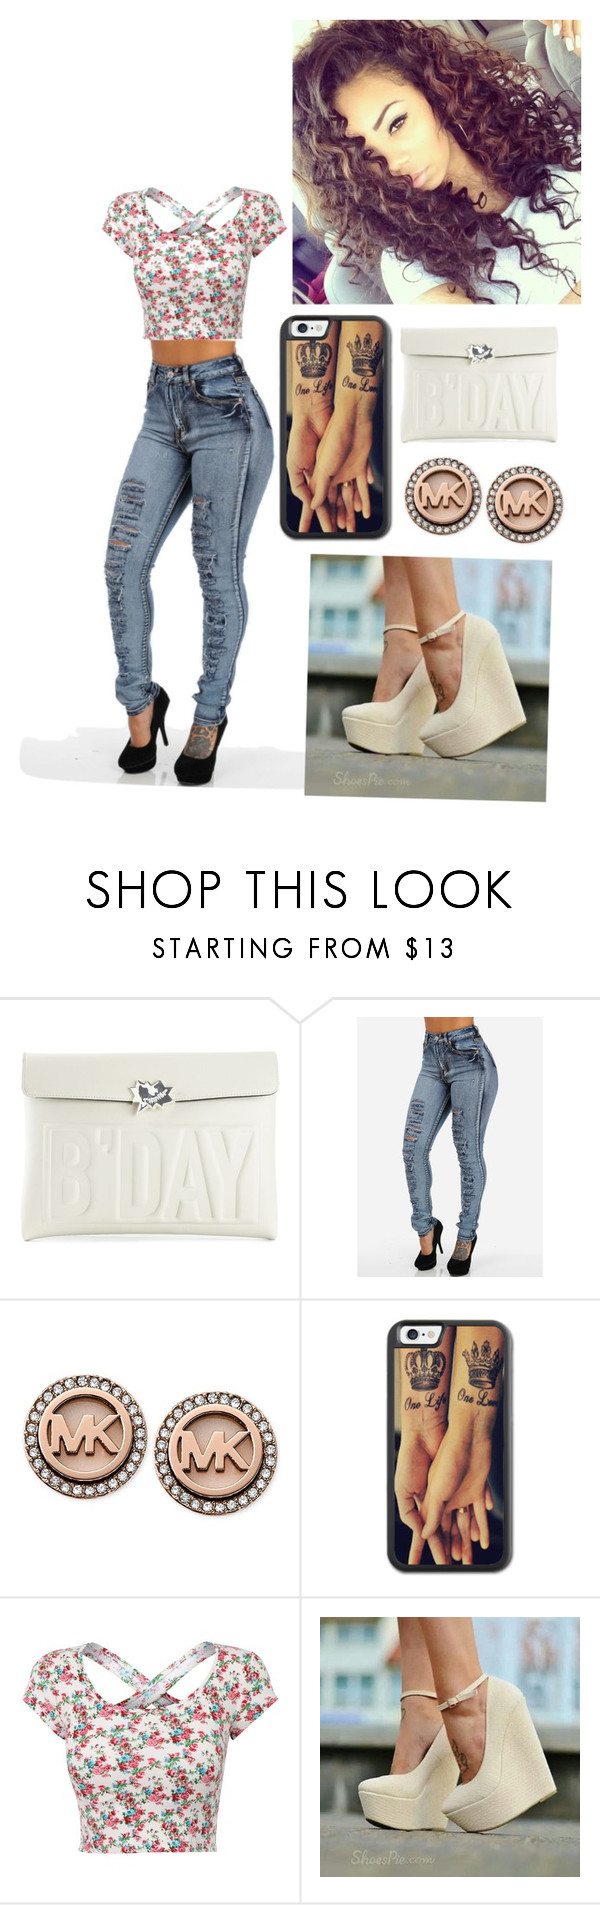 """Untitled #17"" by ricanprincess619 ❤ liked on Polyvore featuring Golden Goose, Michael Kors, women's clothing, women's fashion, women, female, woman, misses and juniors"